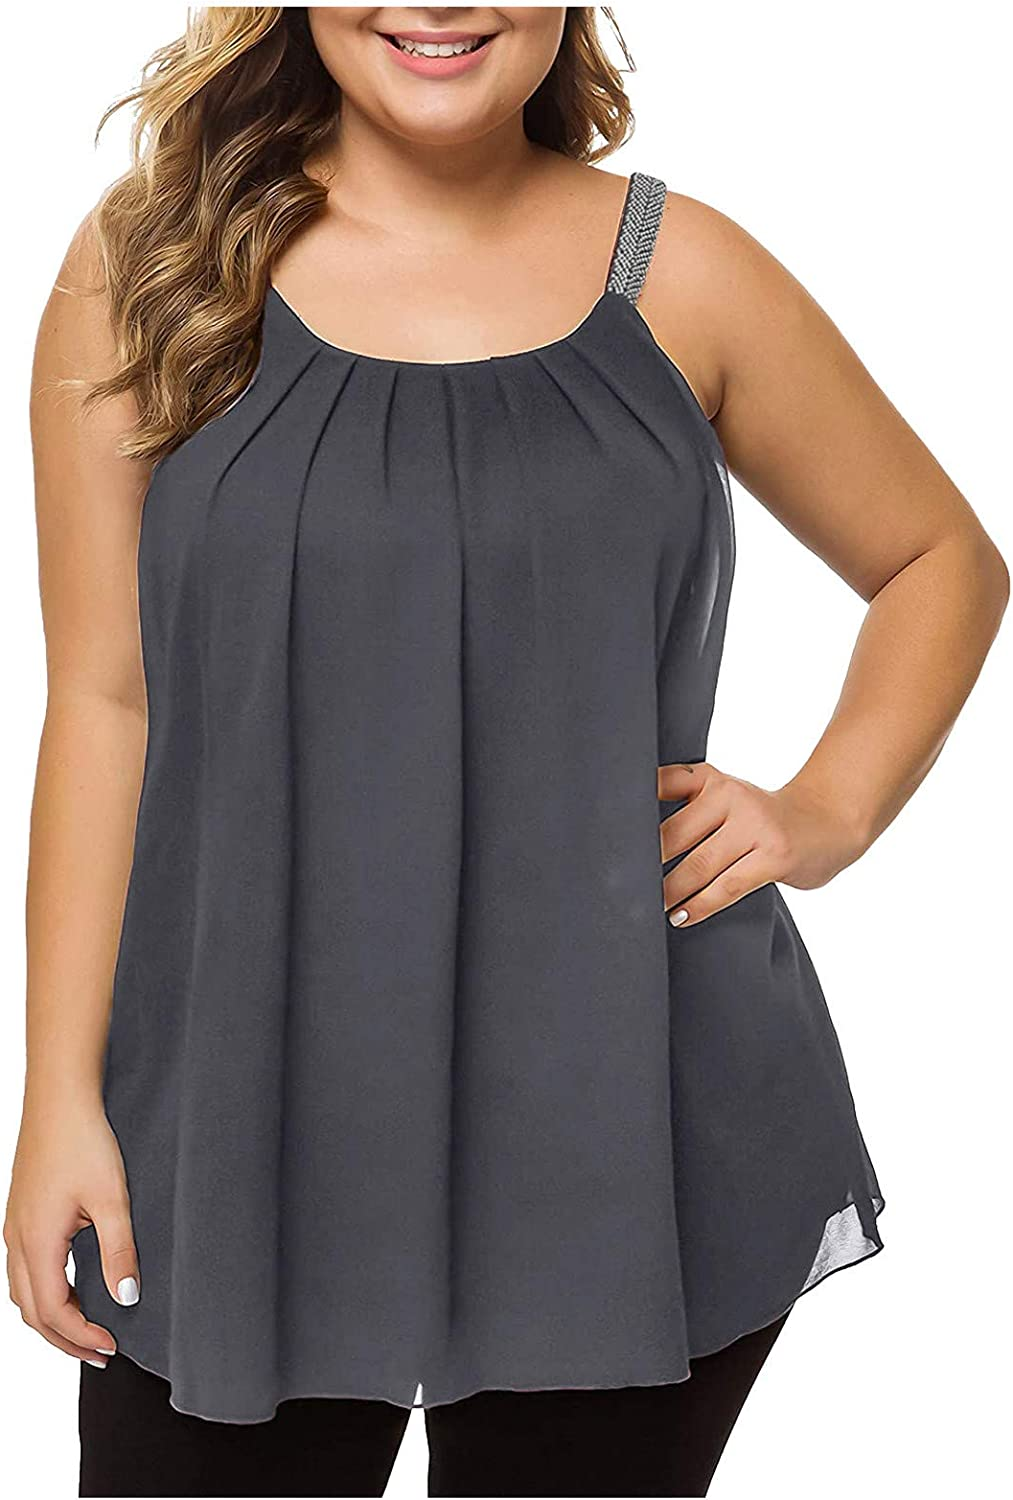 BEUU Women's Plus Size Cami Casual Loose Summer Sleeveless Pleated Flowy Camisole Chiffon Tank Top with Beaded Strap